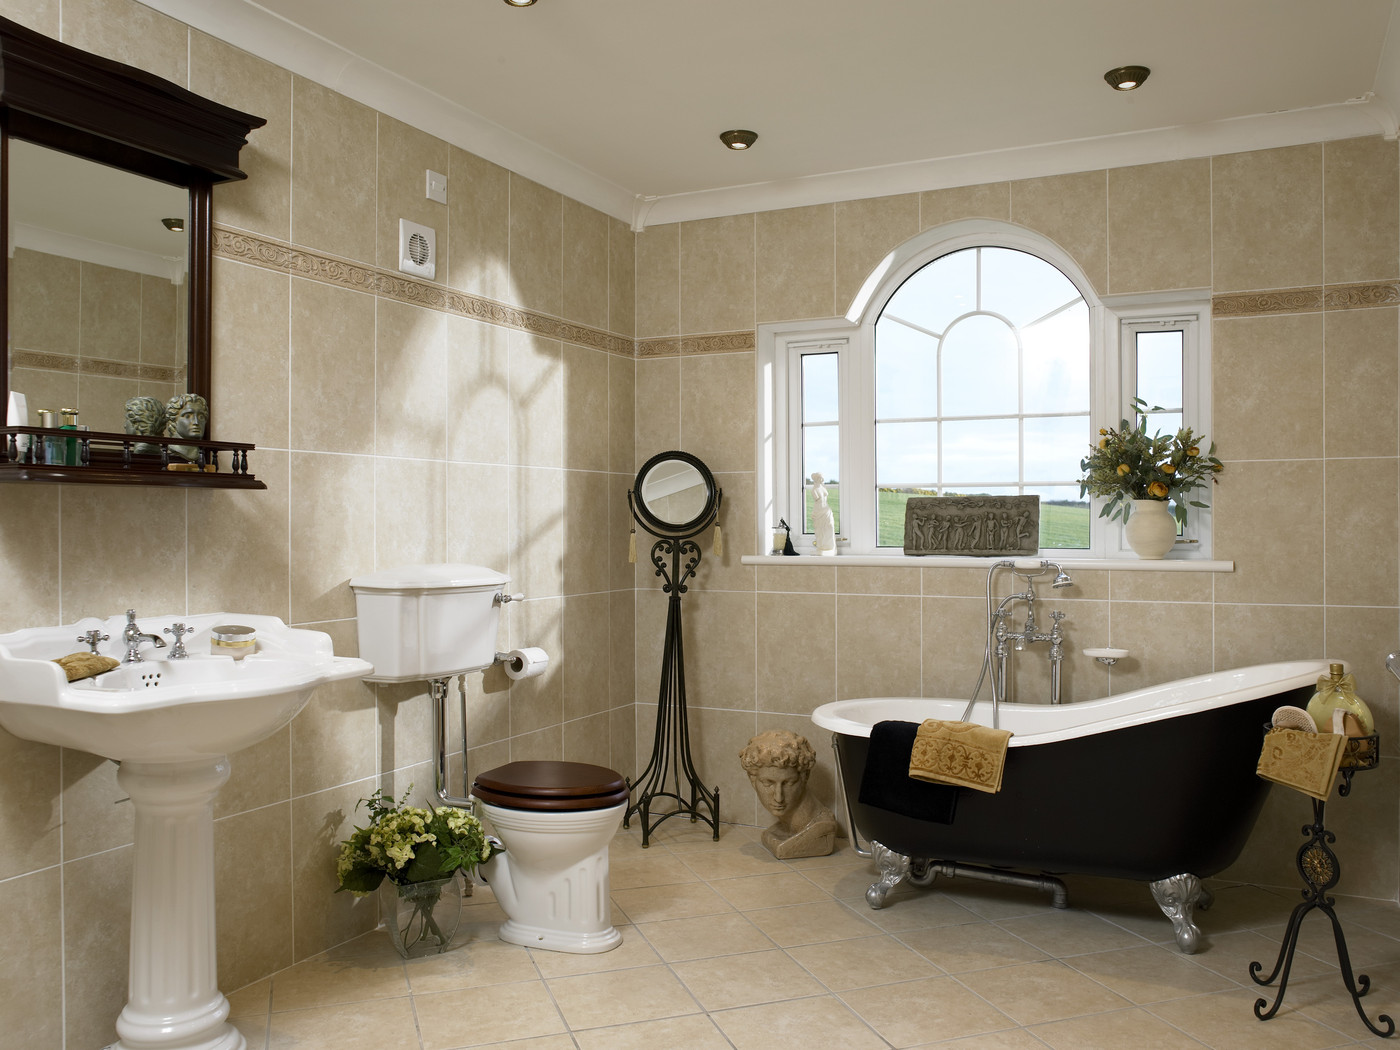 Period Bathrooms Ideas Freestanding Roll Top Bath Photos Design Ideas Remodel